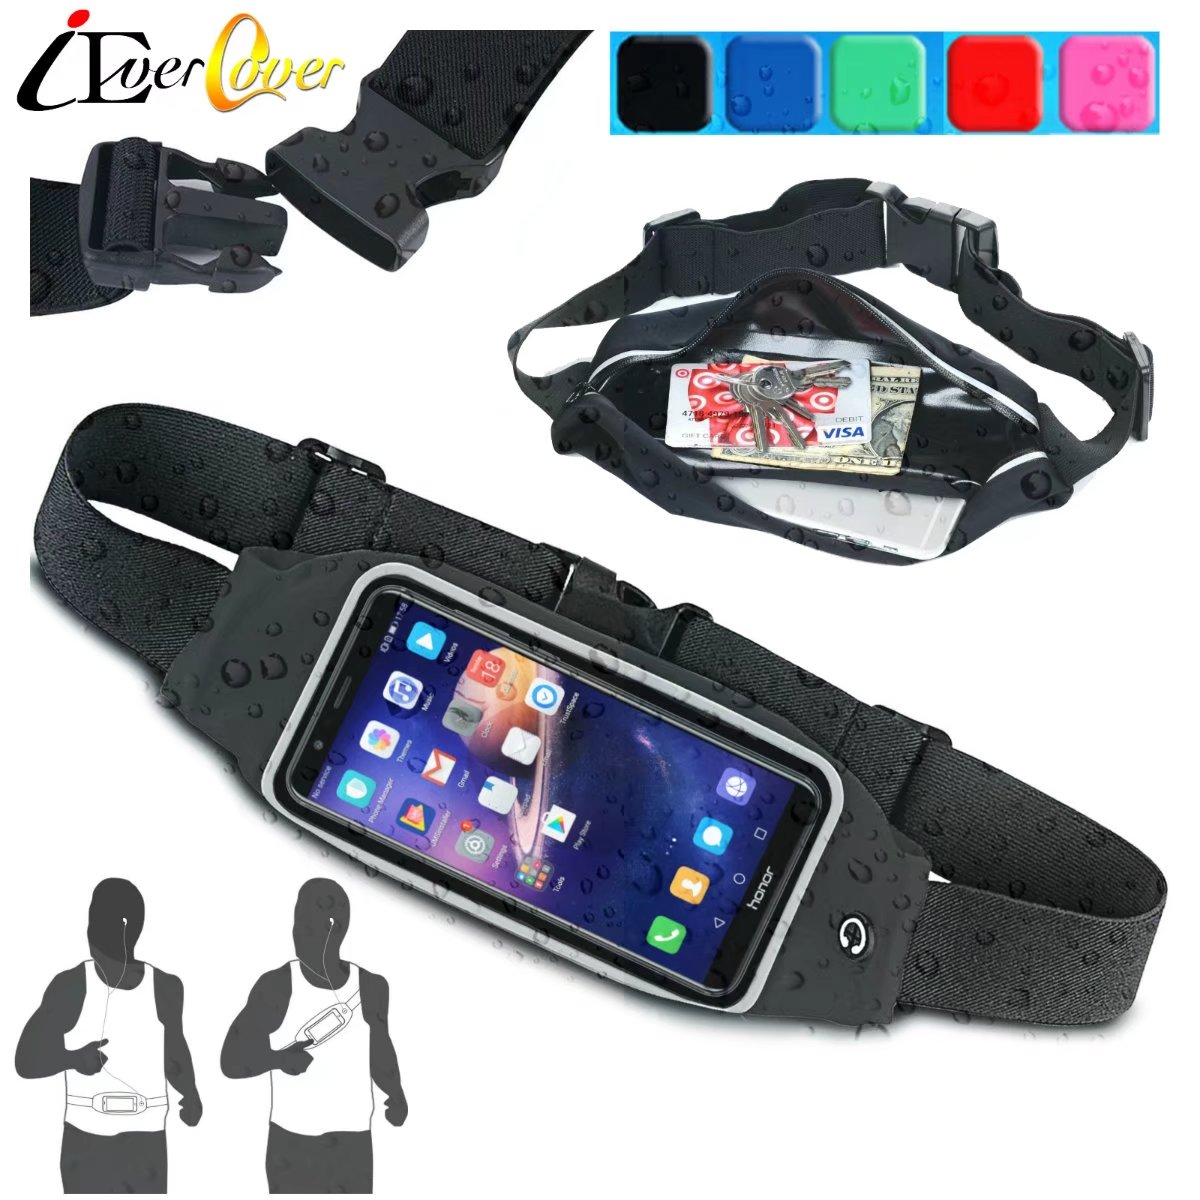 Waterproof Sport Running Waist Bag Band Fitness Pouch Case for Huawei Honor 7x / 9i, Nova 5 5i 4e 2i , Mate 30 20 10 Lite / Pro